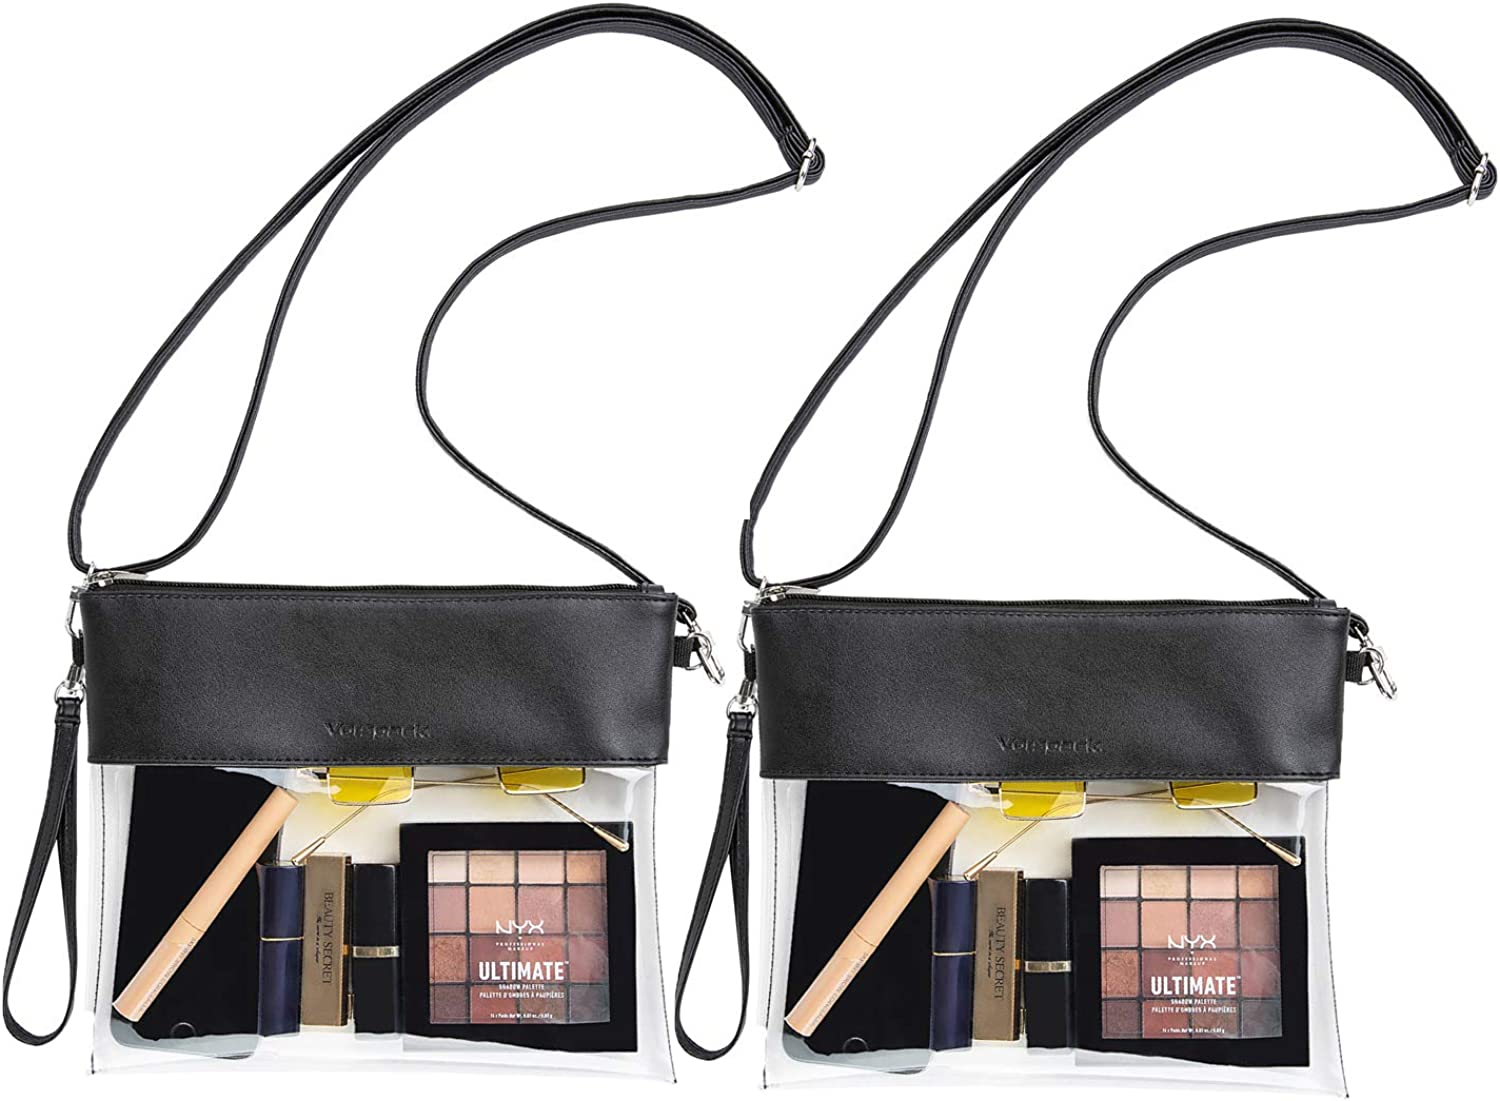 Vorspack Clear Crossbody Purse Stadium Approved PU Leather Black Clear Concert Bag 2 Pack